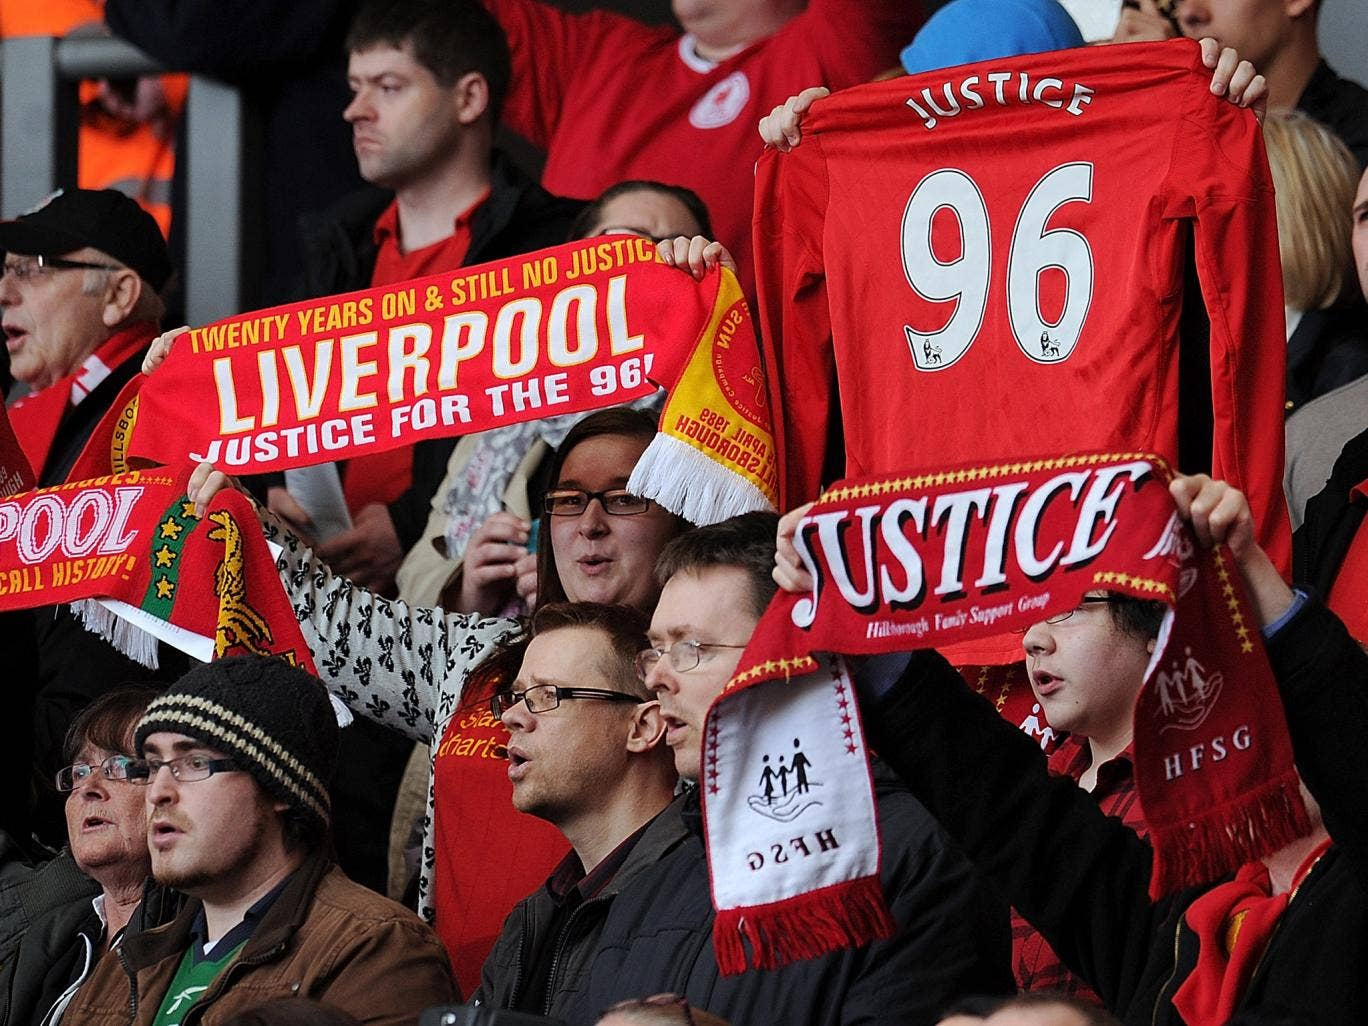 Matches will kick-off seven minutes later to mark the 25th anniversary of the Hillsborough disaster